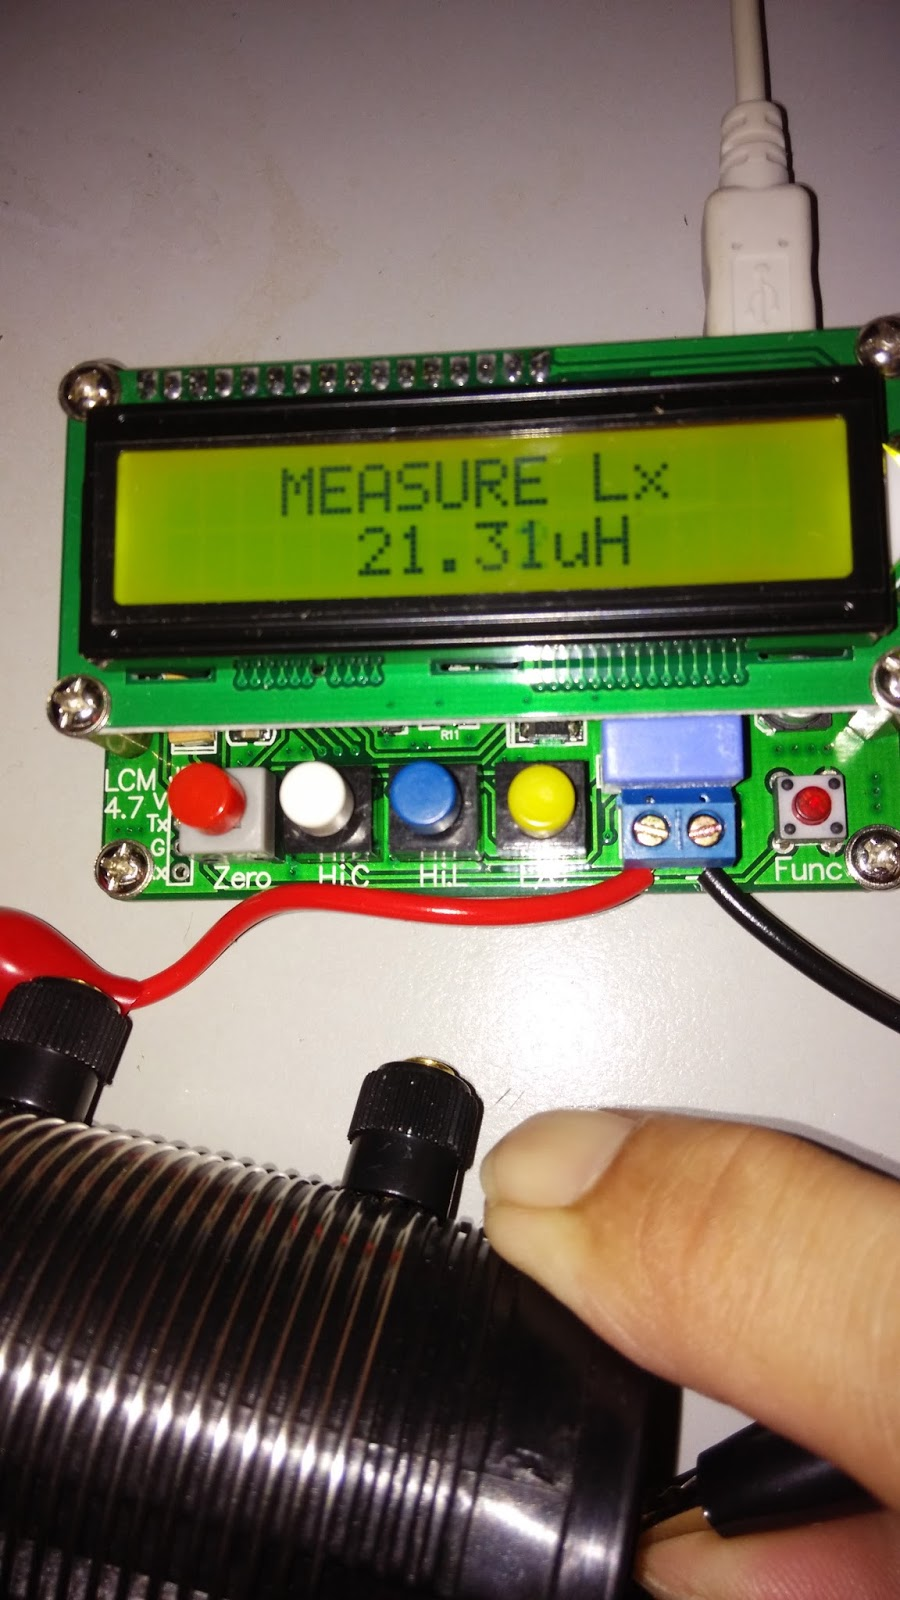 9w2svt 2017 Home Images Lc Meter Circuit Coil Capacitor Show The Henry Readings